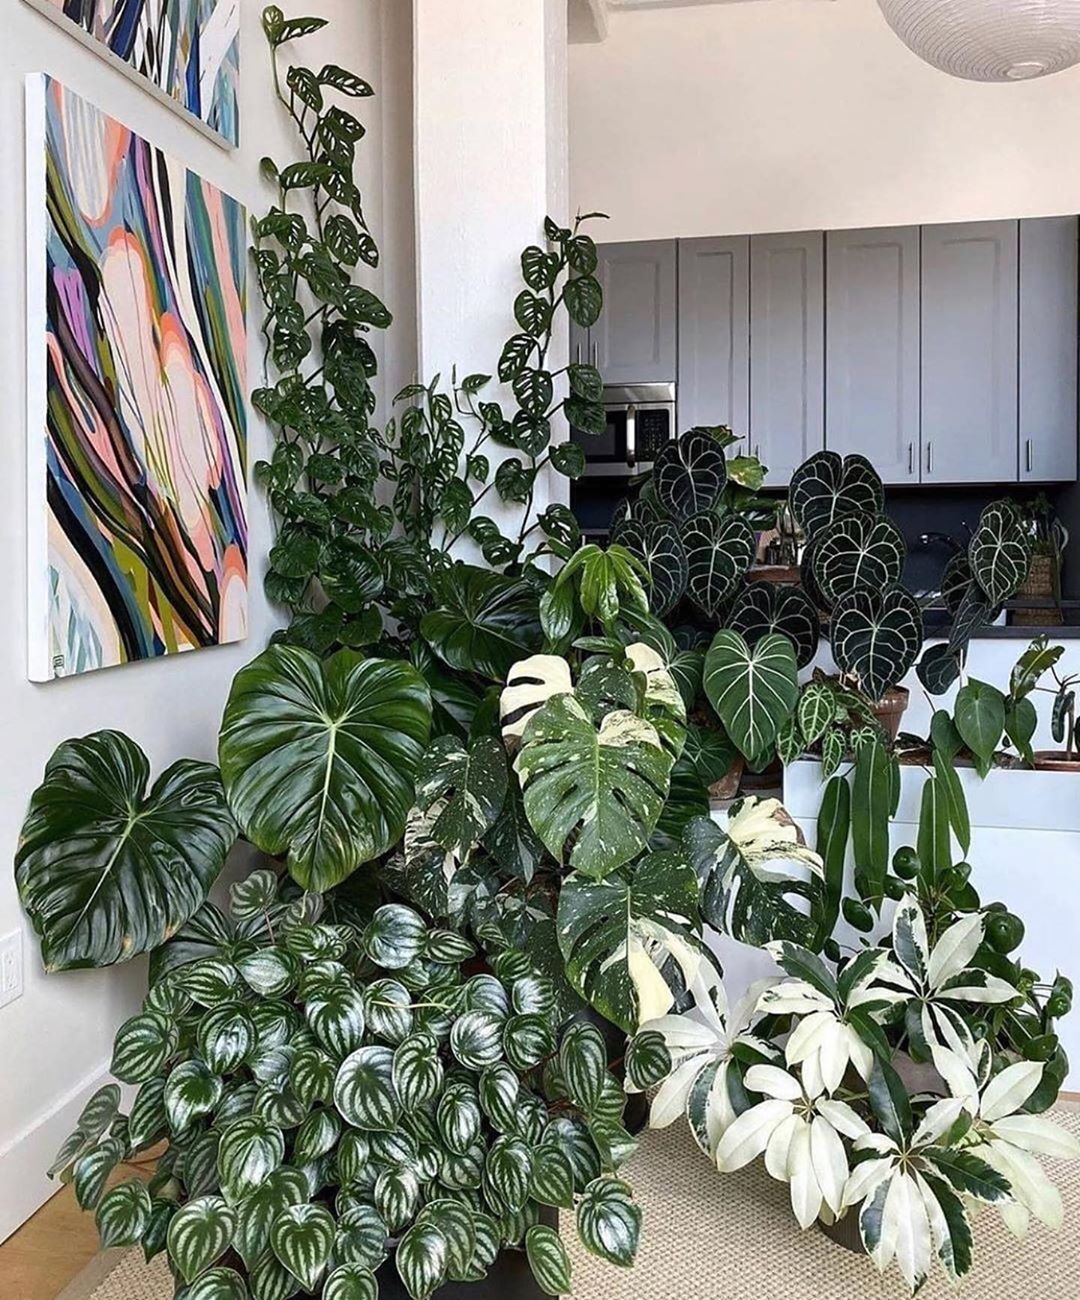 Zz Botanical And Home On Instagram A Beautiful Display